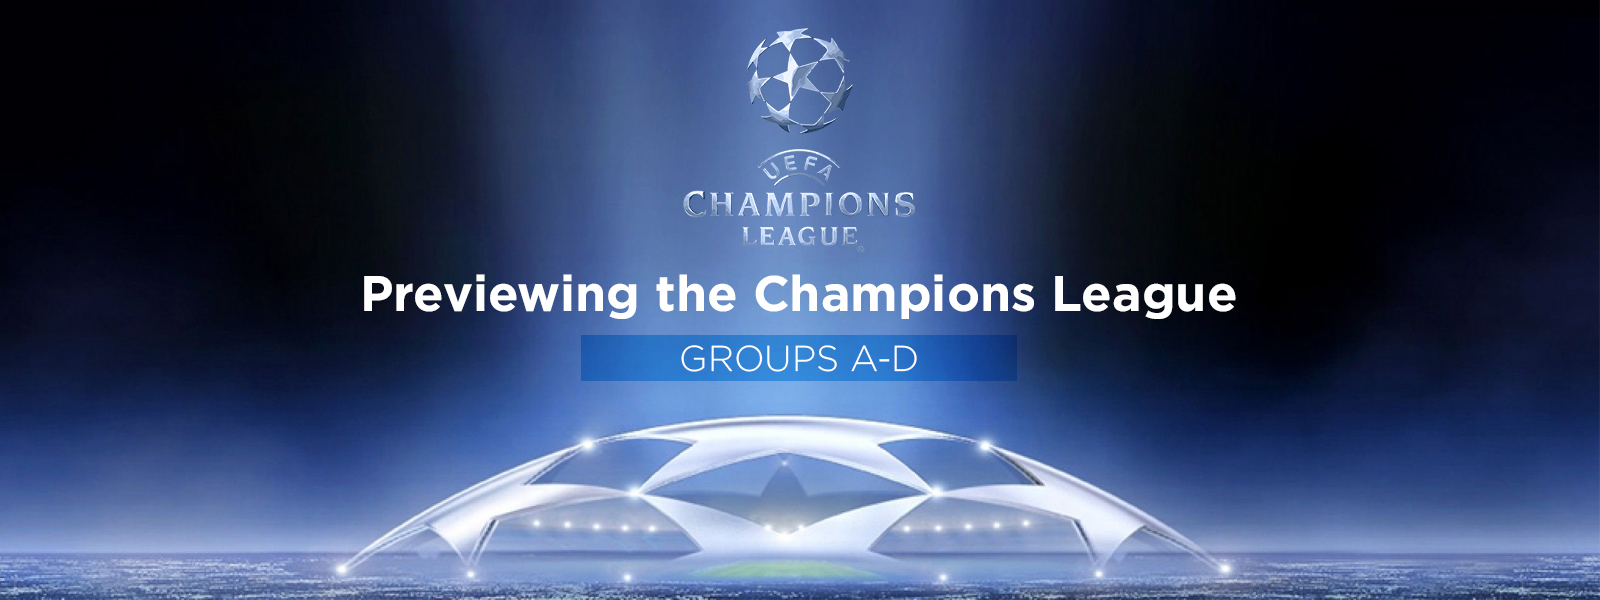 Previewing the Champions League groups A-D